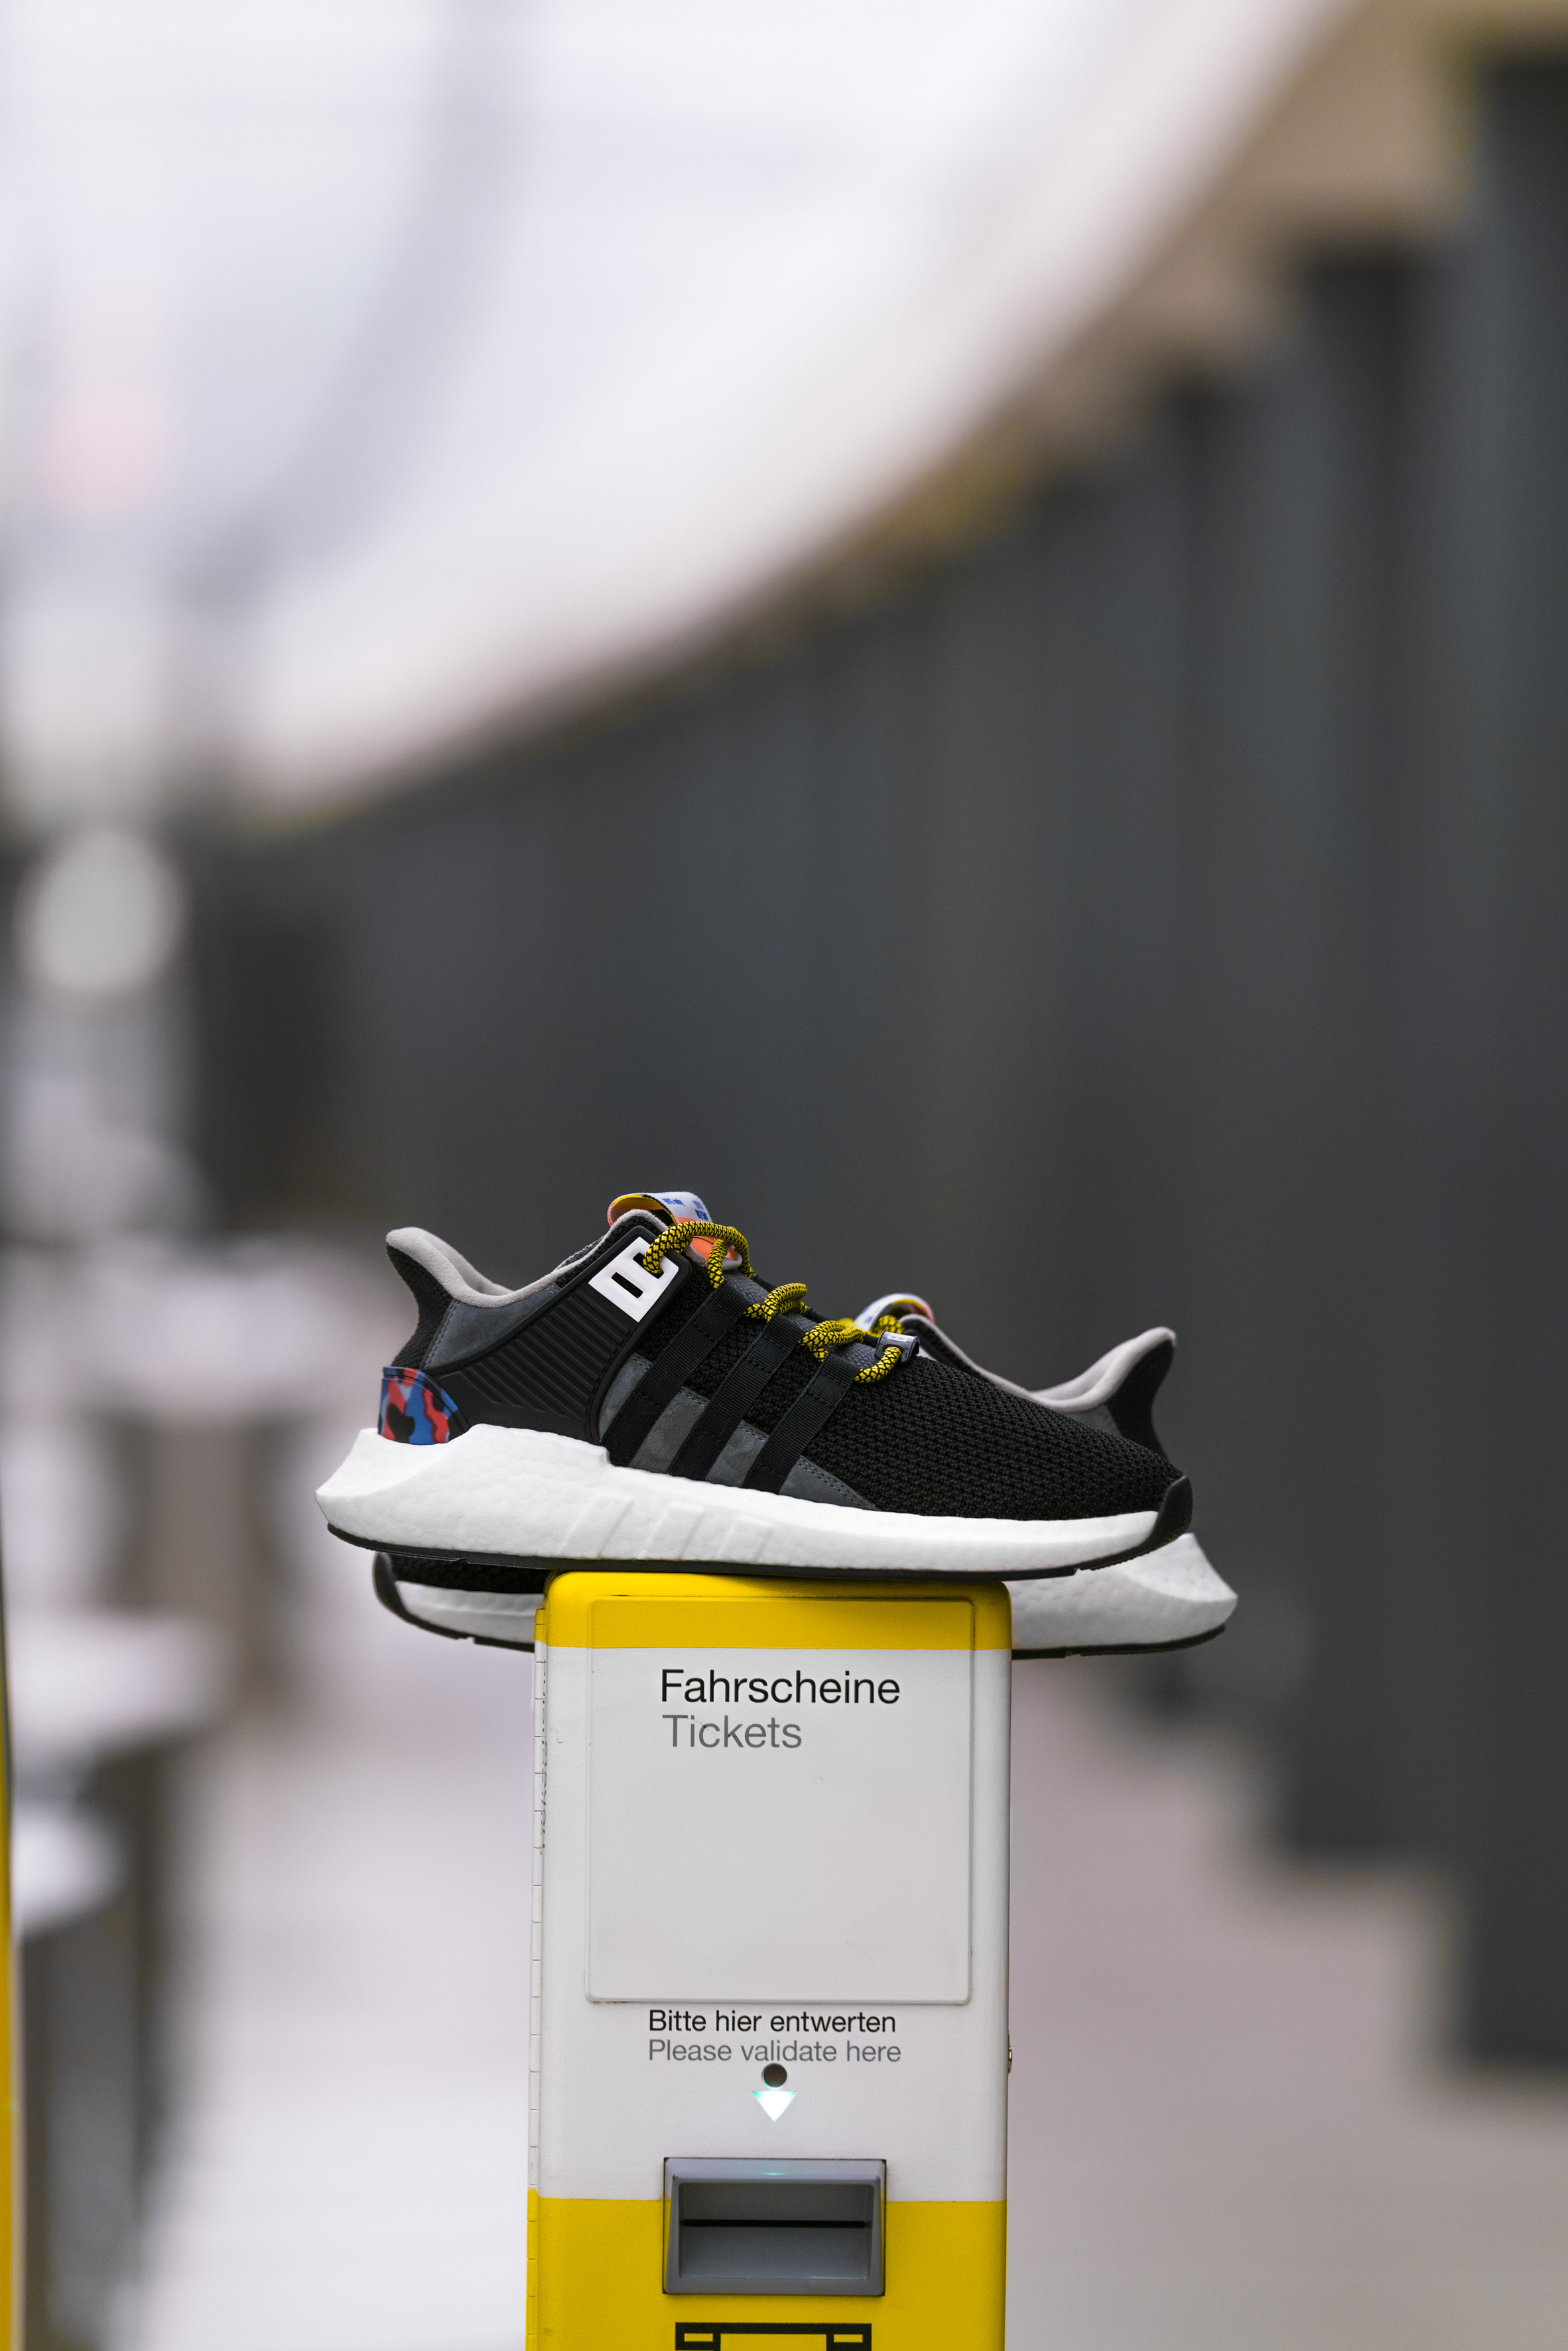 c06db6d531c5f8 Adidas releases limited-edition trainers that match Berlin subway seats